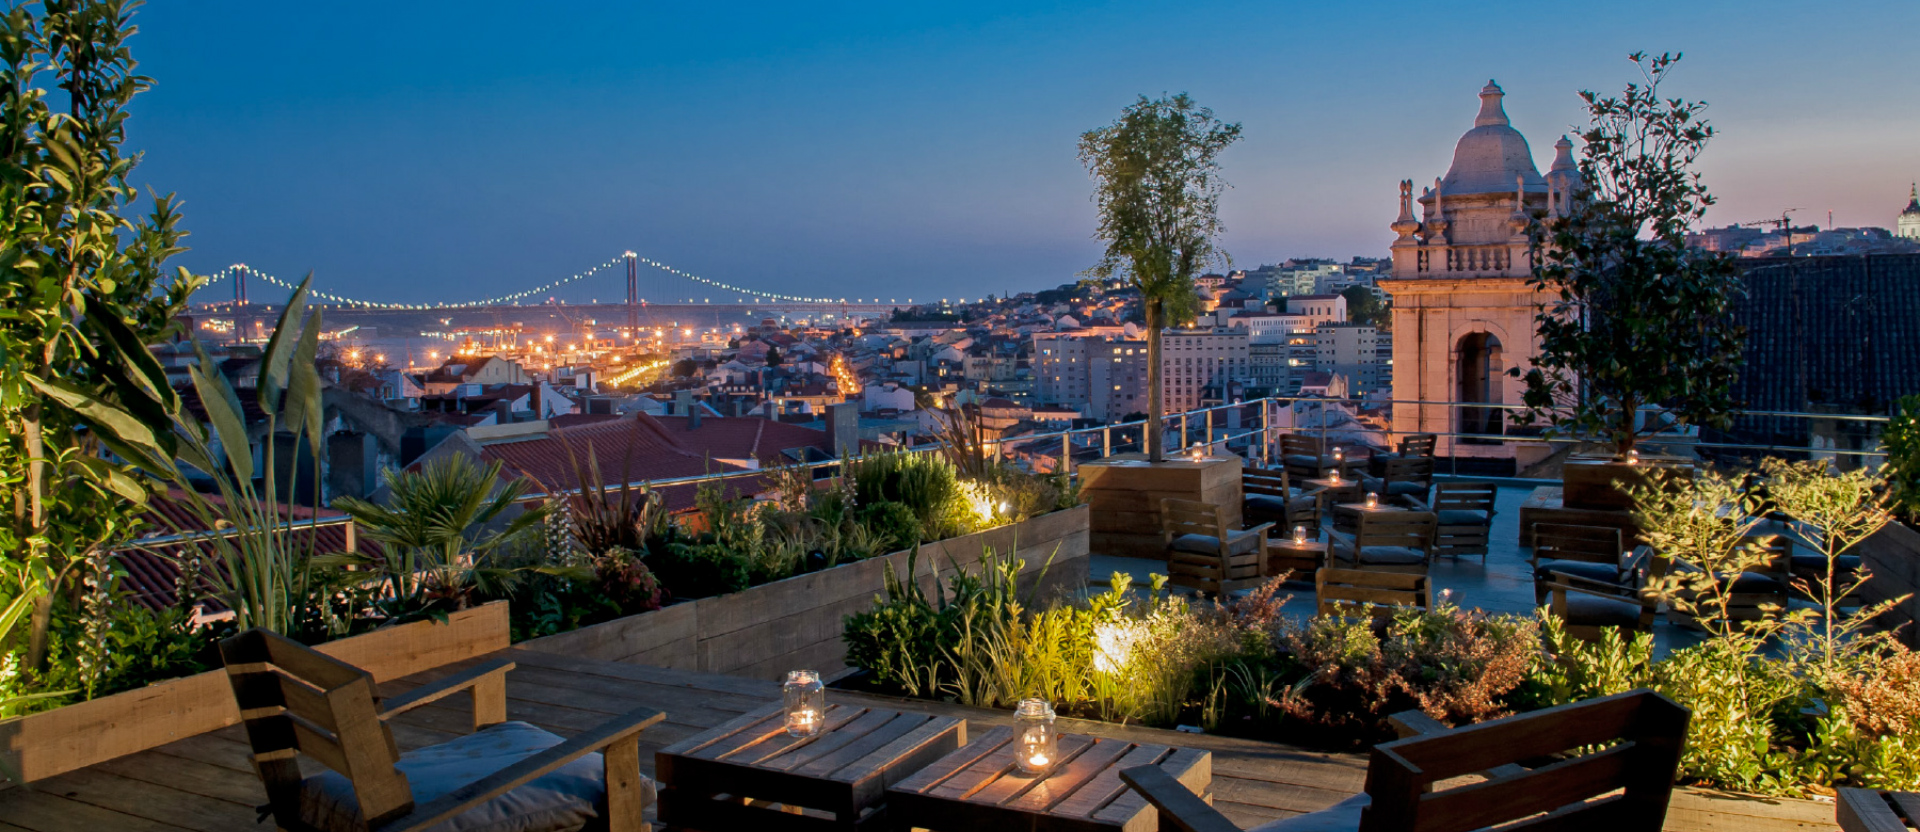 Best rooftops in Portugal: PARK Bar what to do in lisbon What To Do In Lisbon: 48 Hours In The Capital Carrocel 1 18